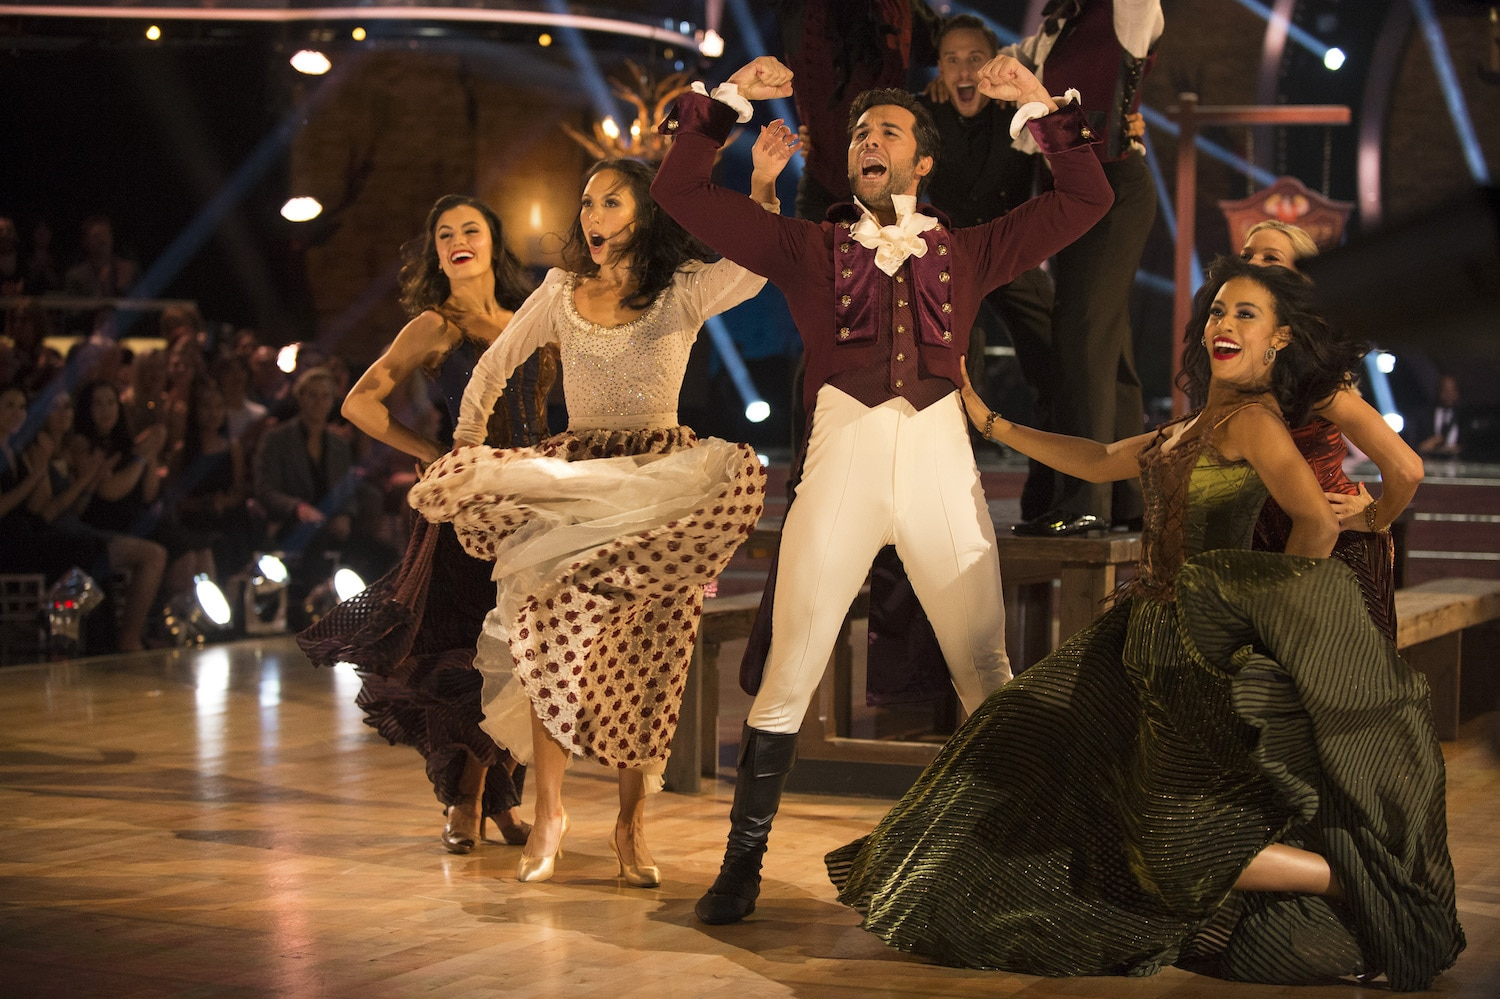 Juan Pablo Di Pace and Cheryl Burke dancing, dressed as characters from Beauty and the Beast